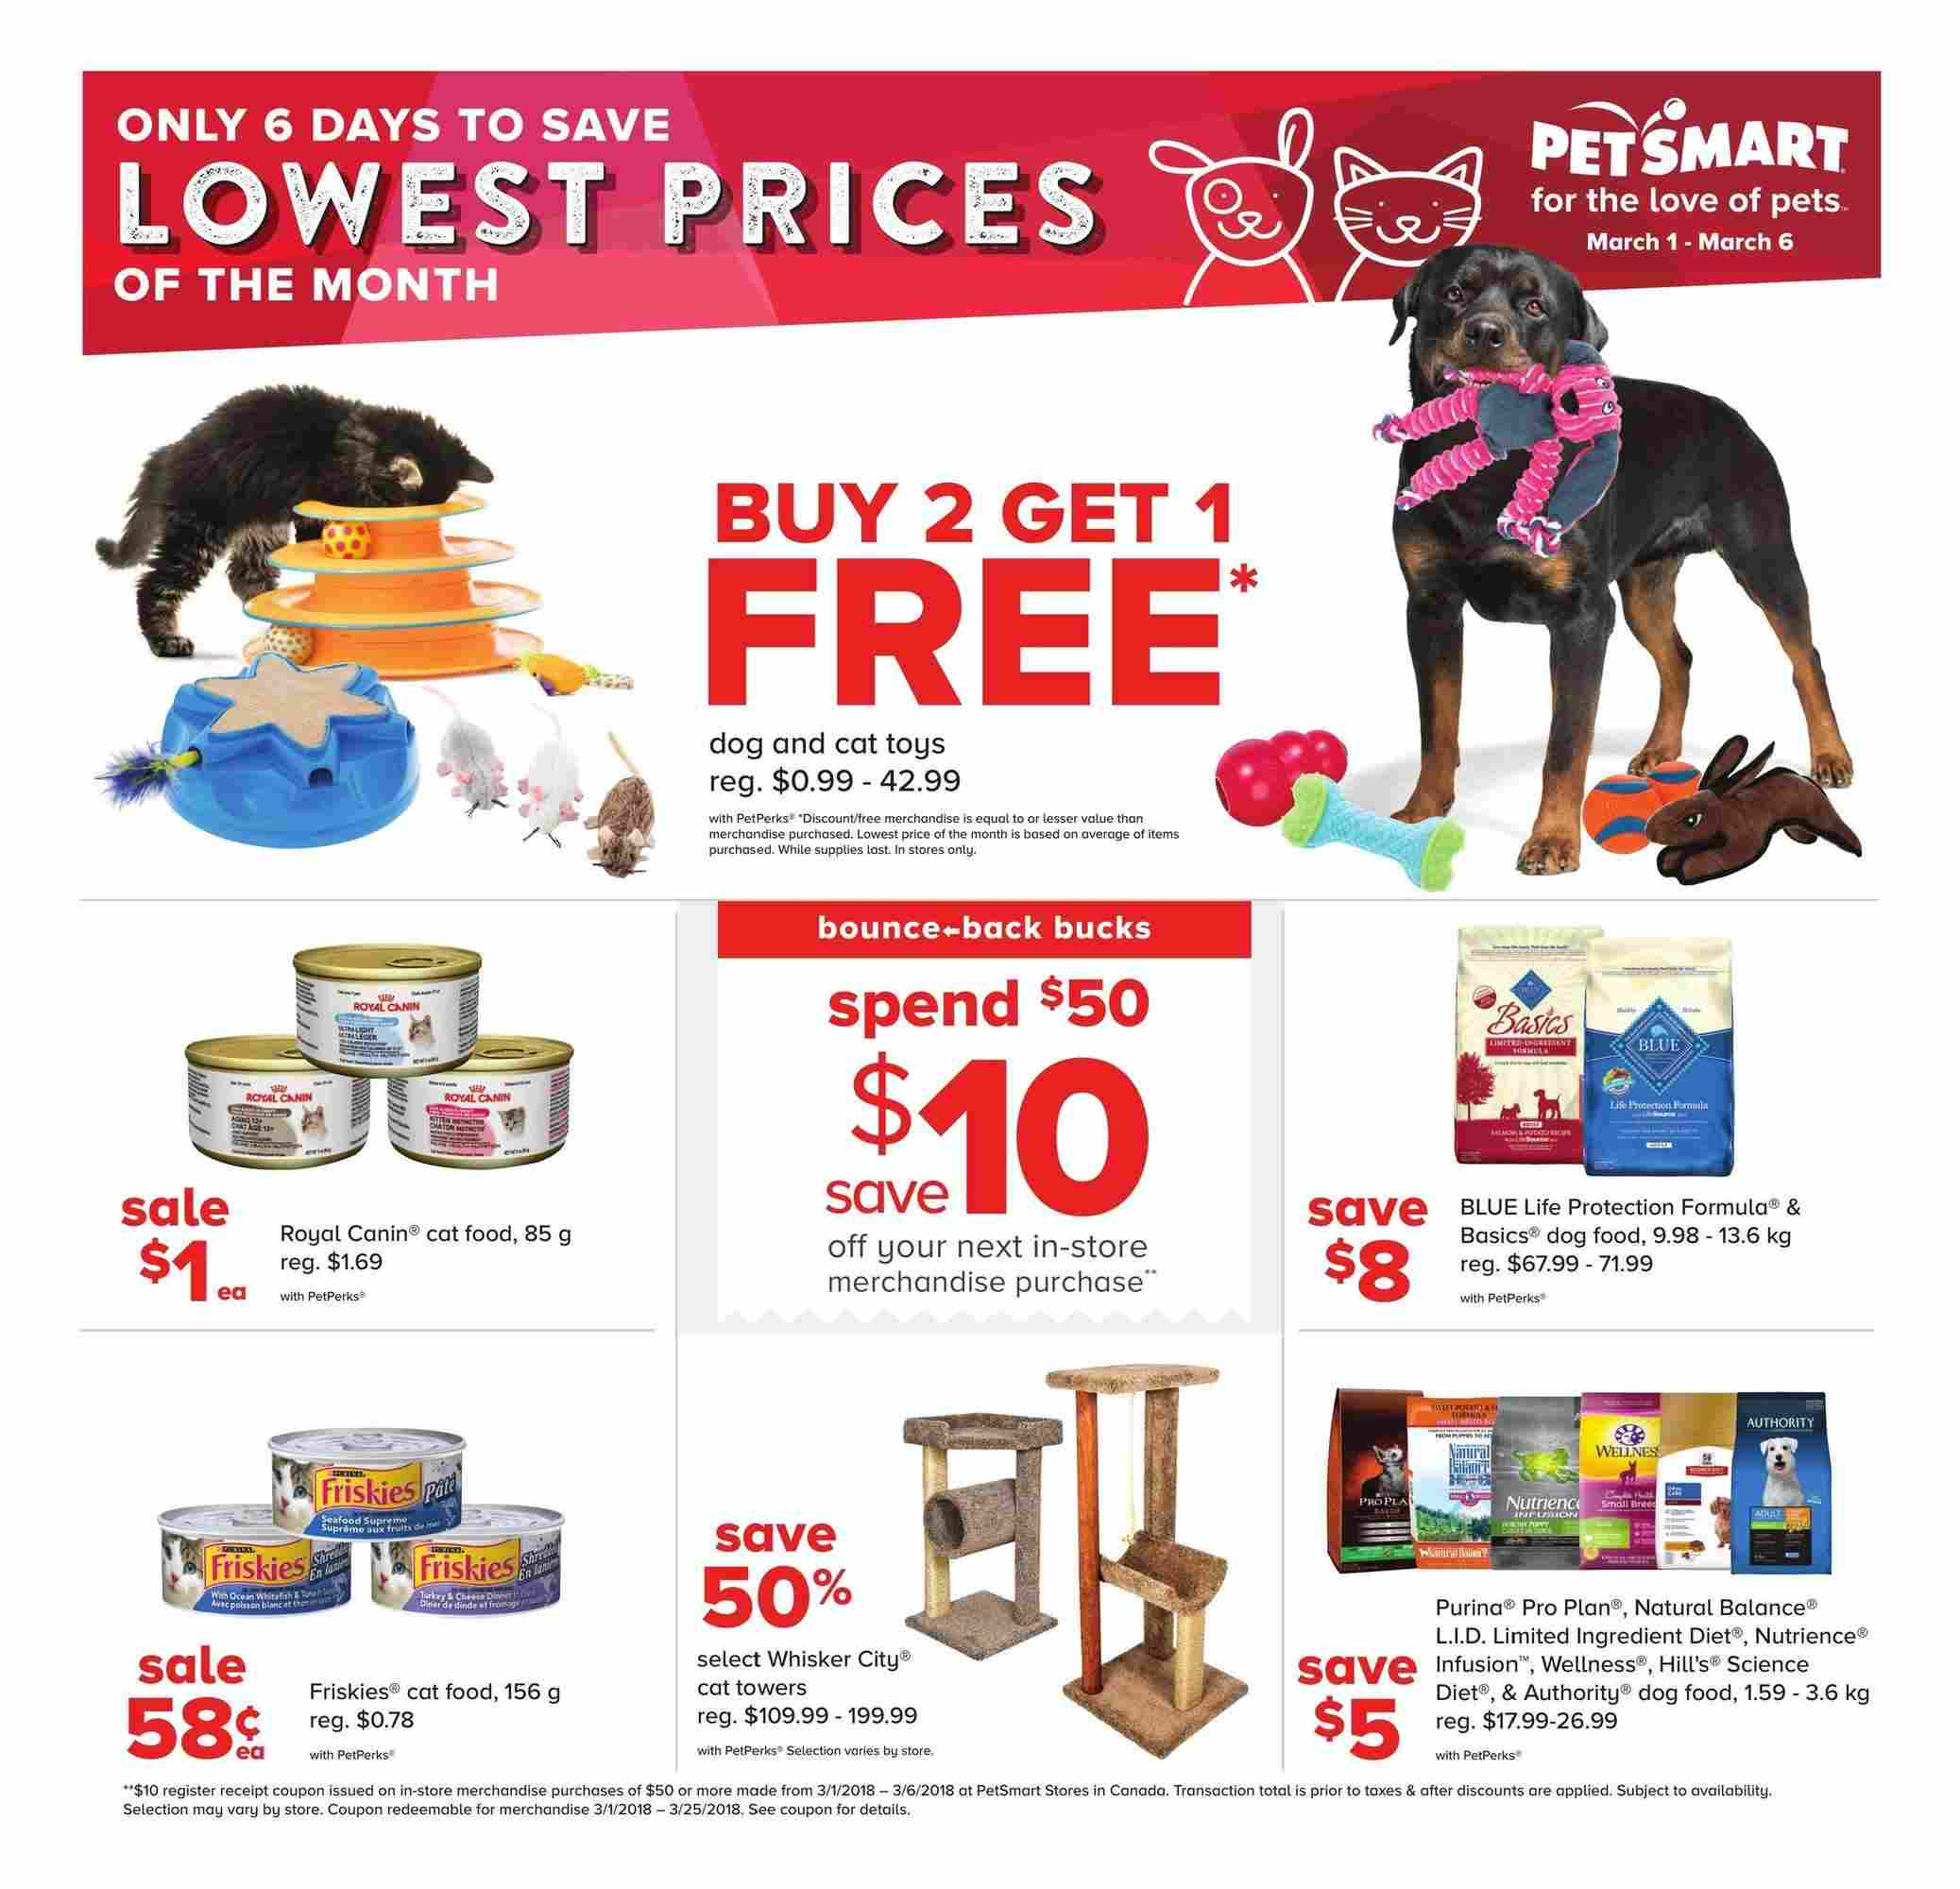 Deal Costco Canada Online Offers Valid From Feb 28 To Mar: PetSmart Flyer (ON) March 1